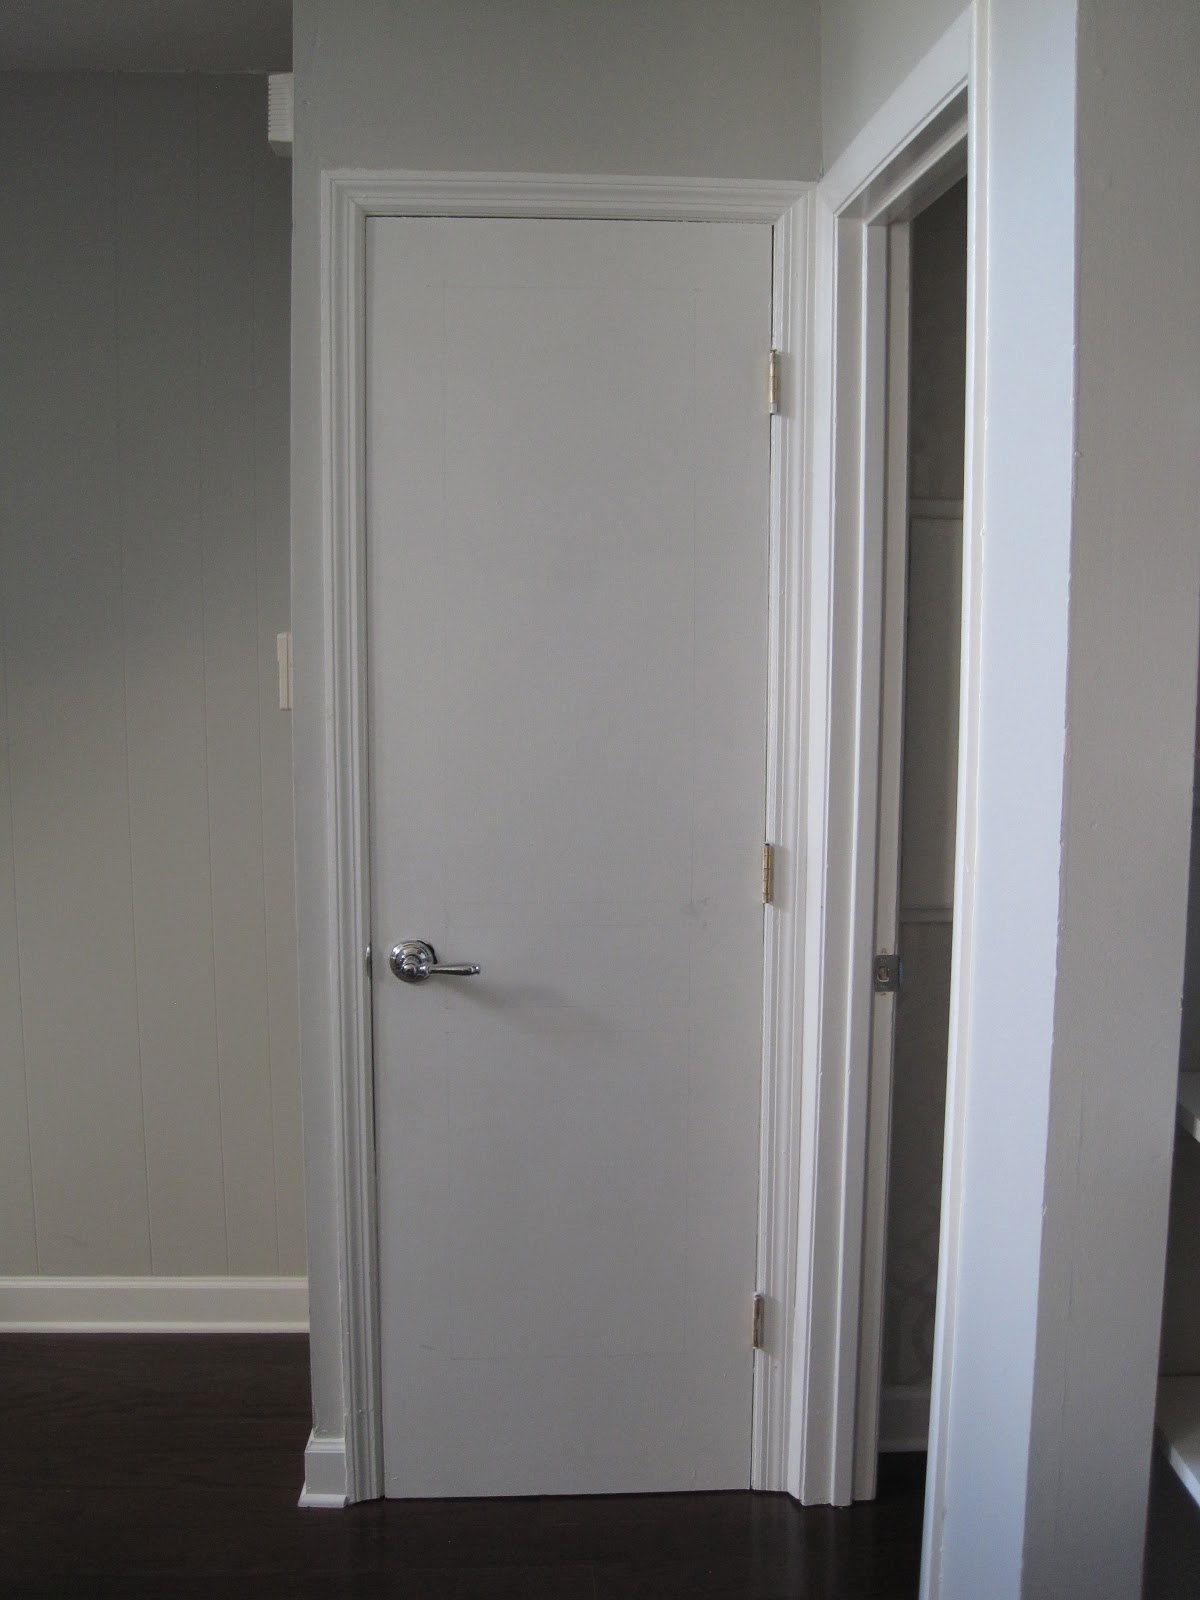 1600 #586273 Here Is What My Doors Looked Like Before Plain White With White Trim  wallpaper Plain Exterior Doors 41551200